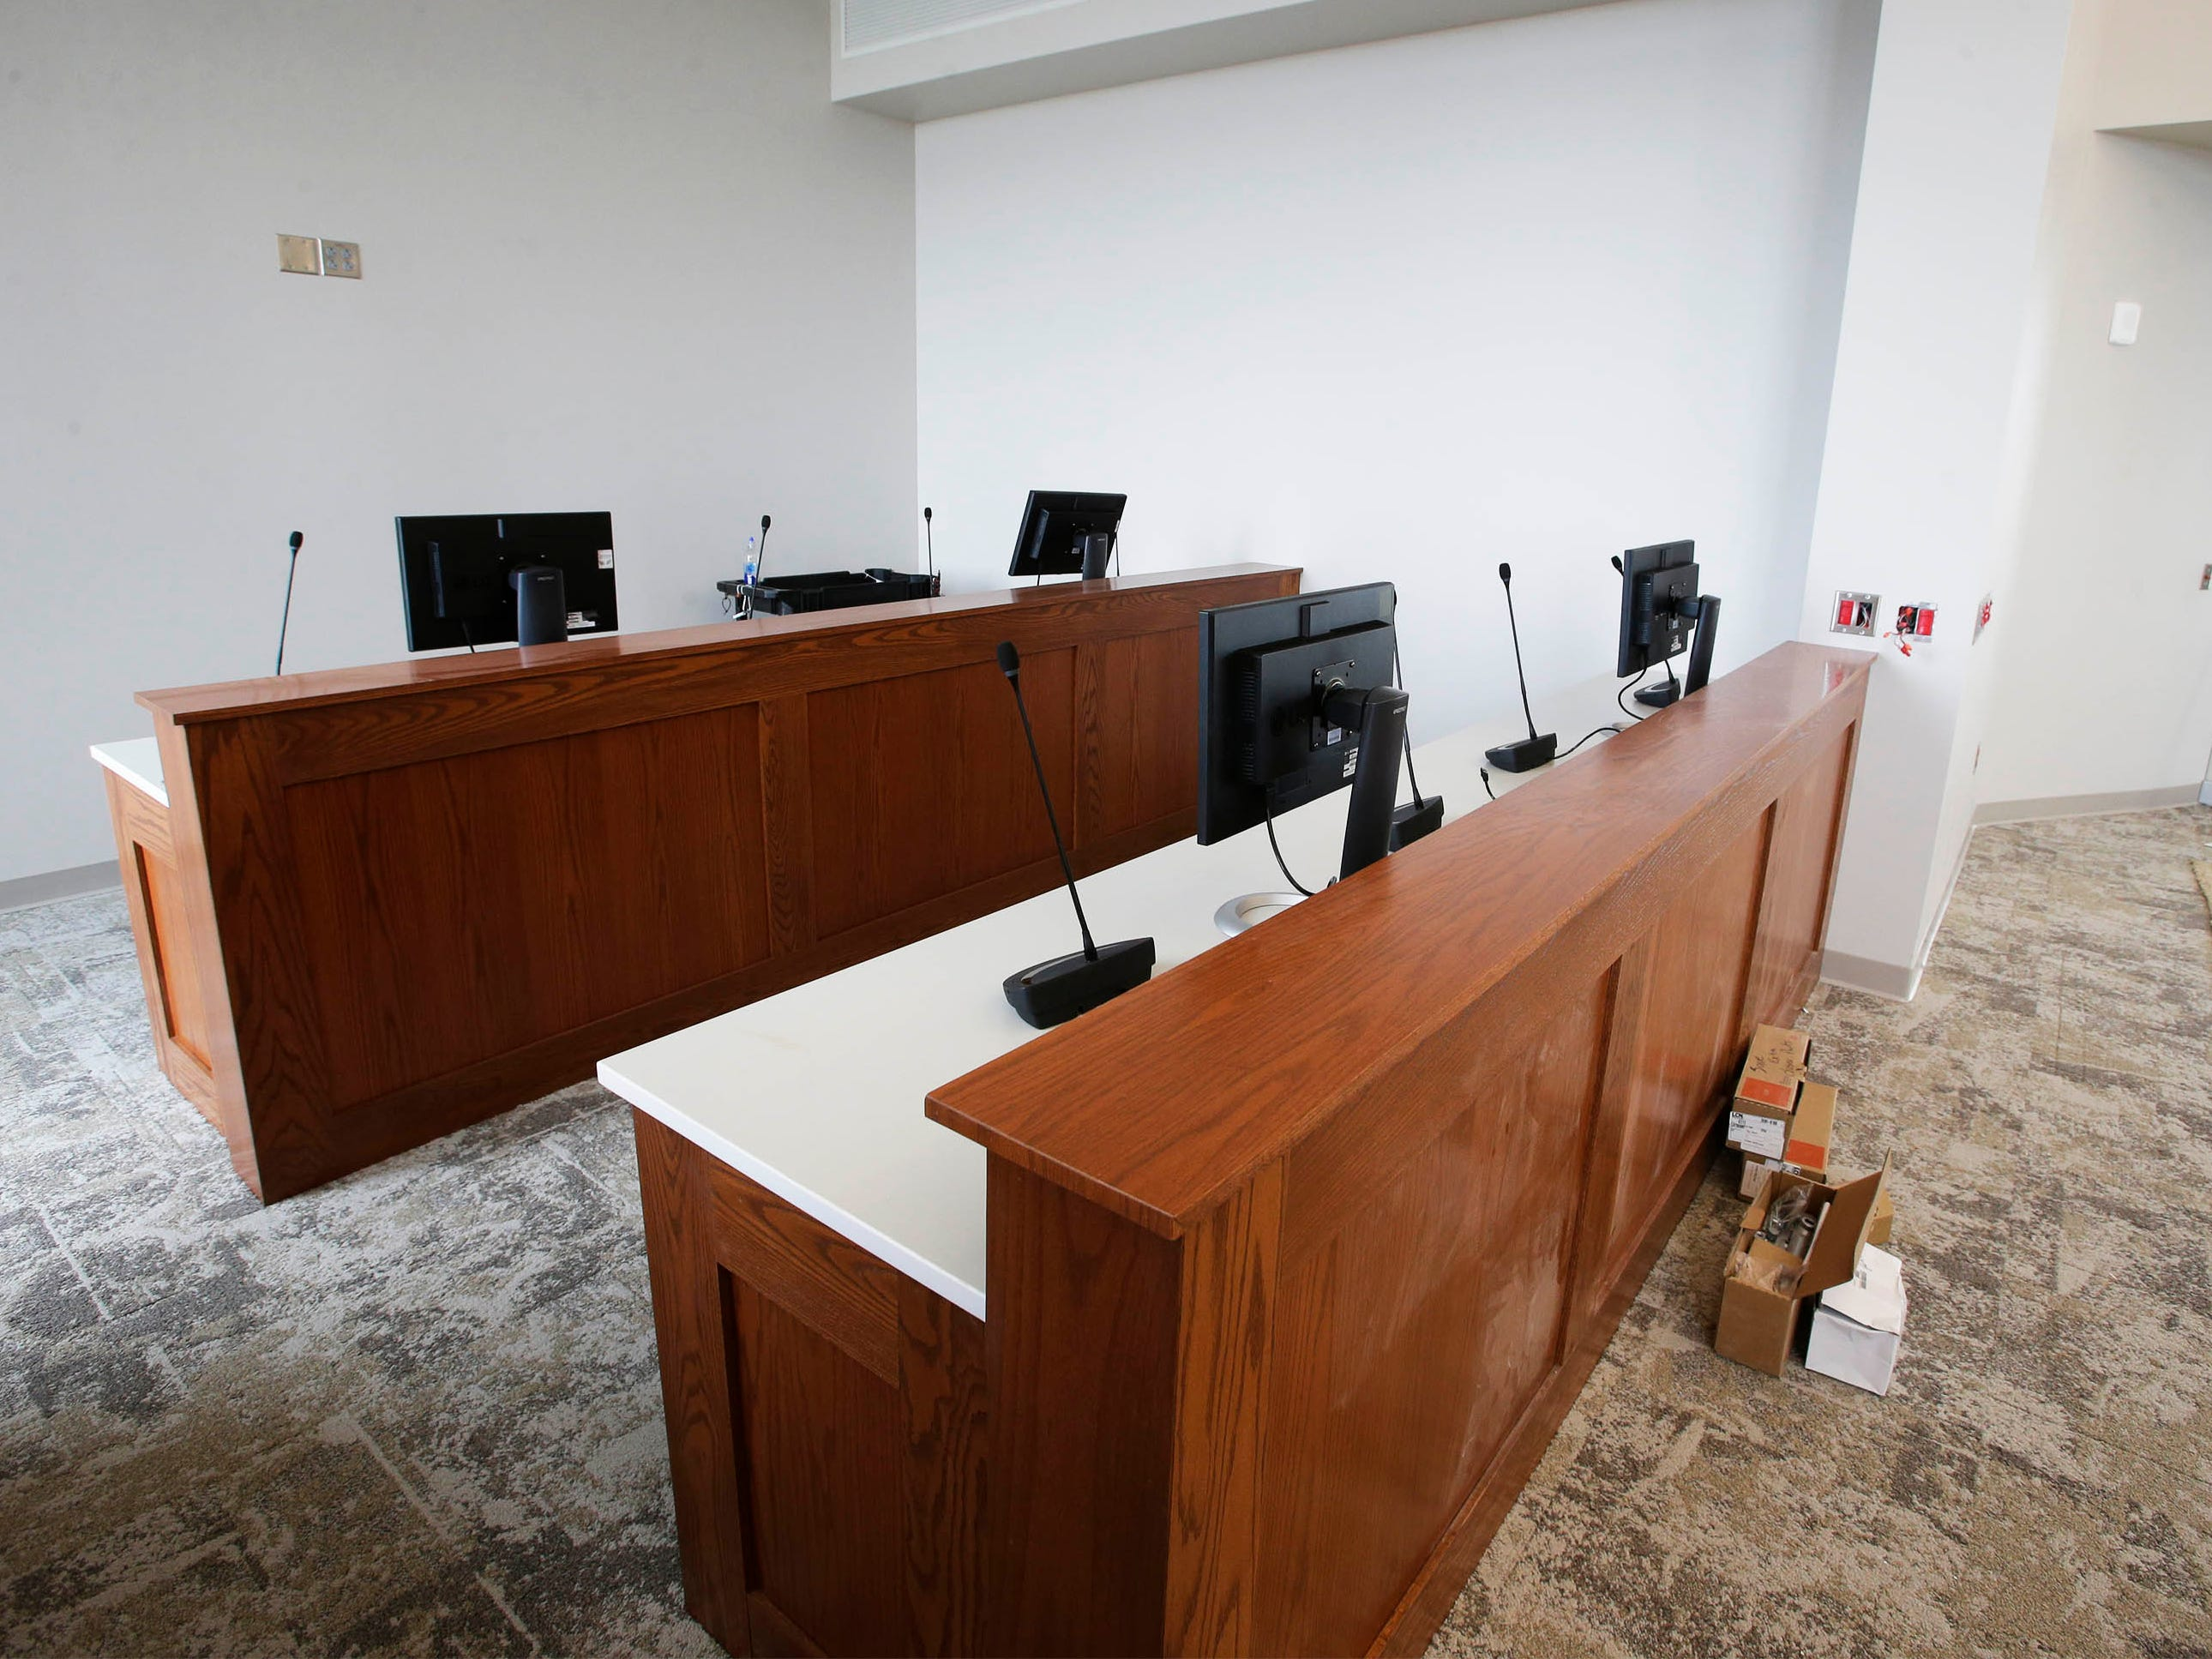 The managers area in the newly refurbished Sheboygan City Hall council chambers as seen, Tuesday, May 7, 2019, in Sheboygan, Wis.